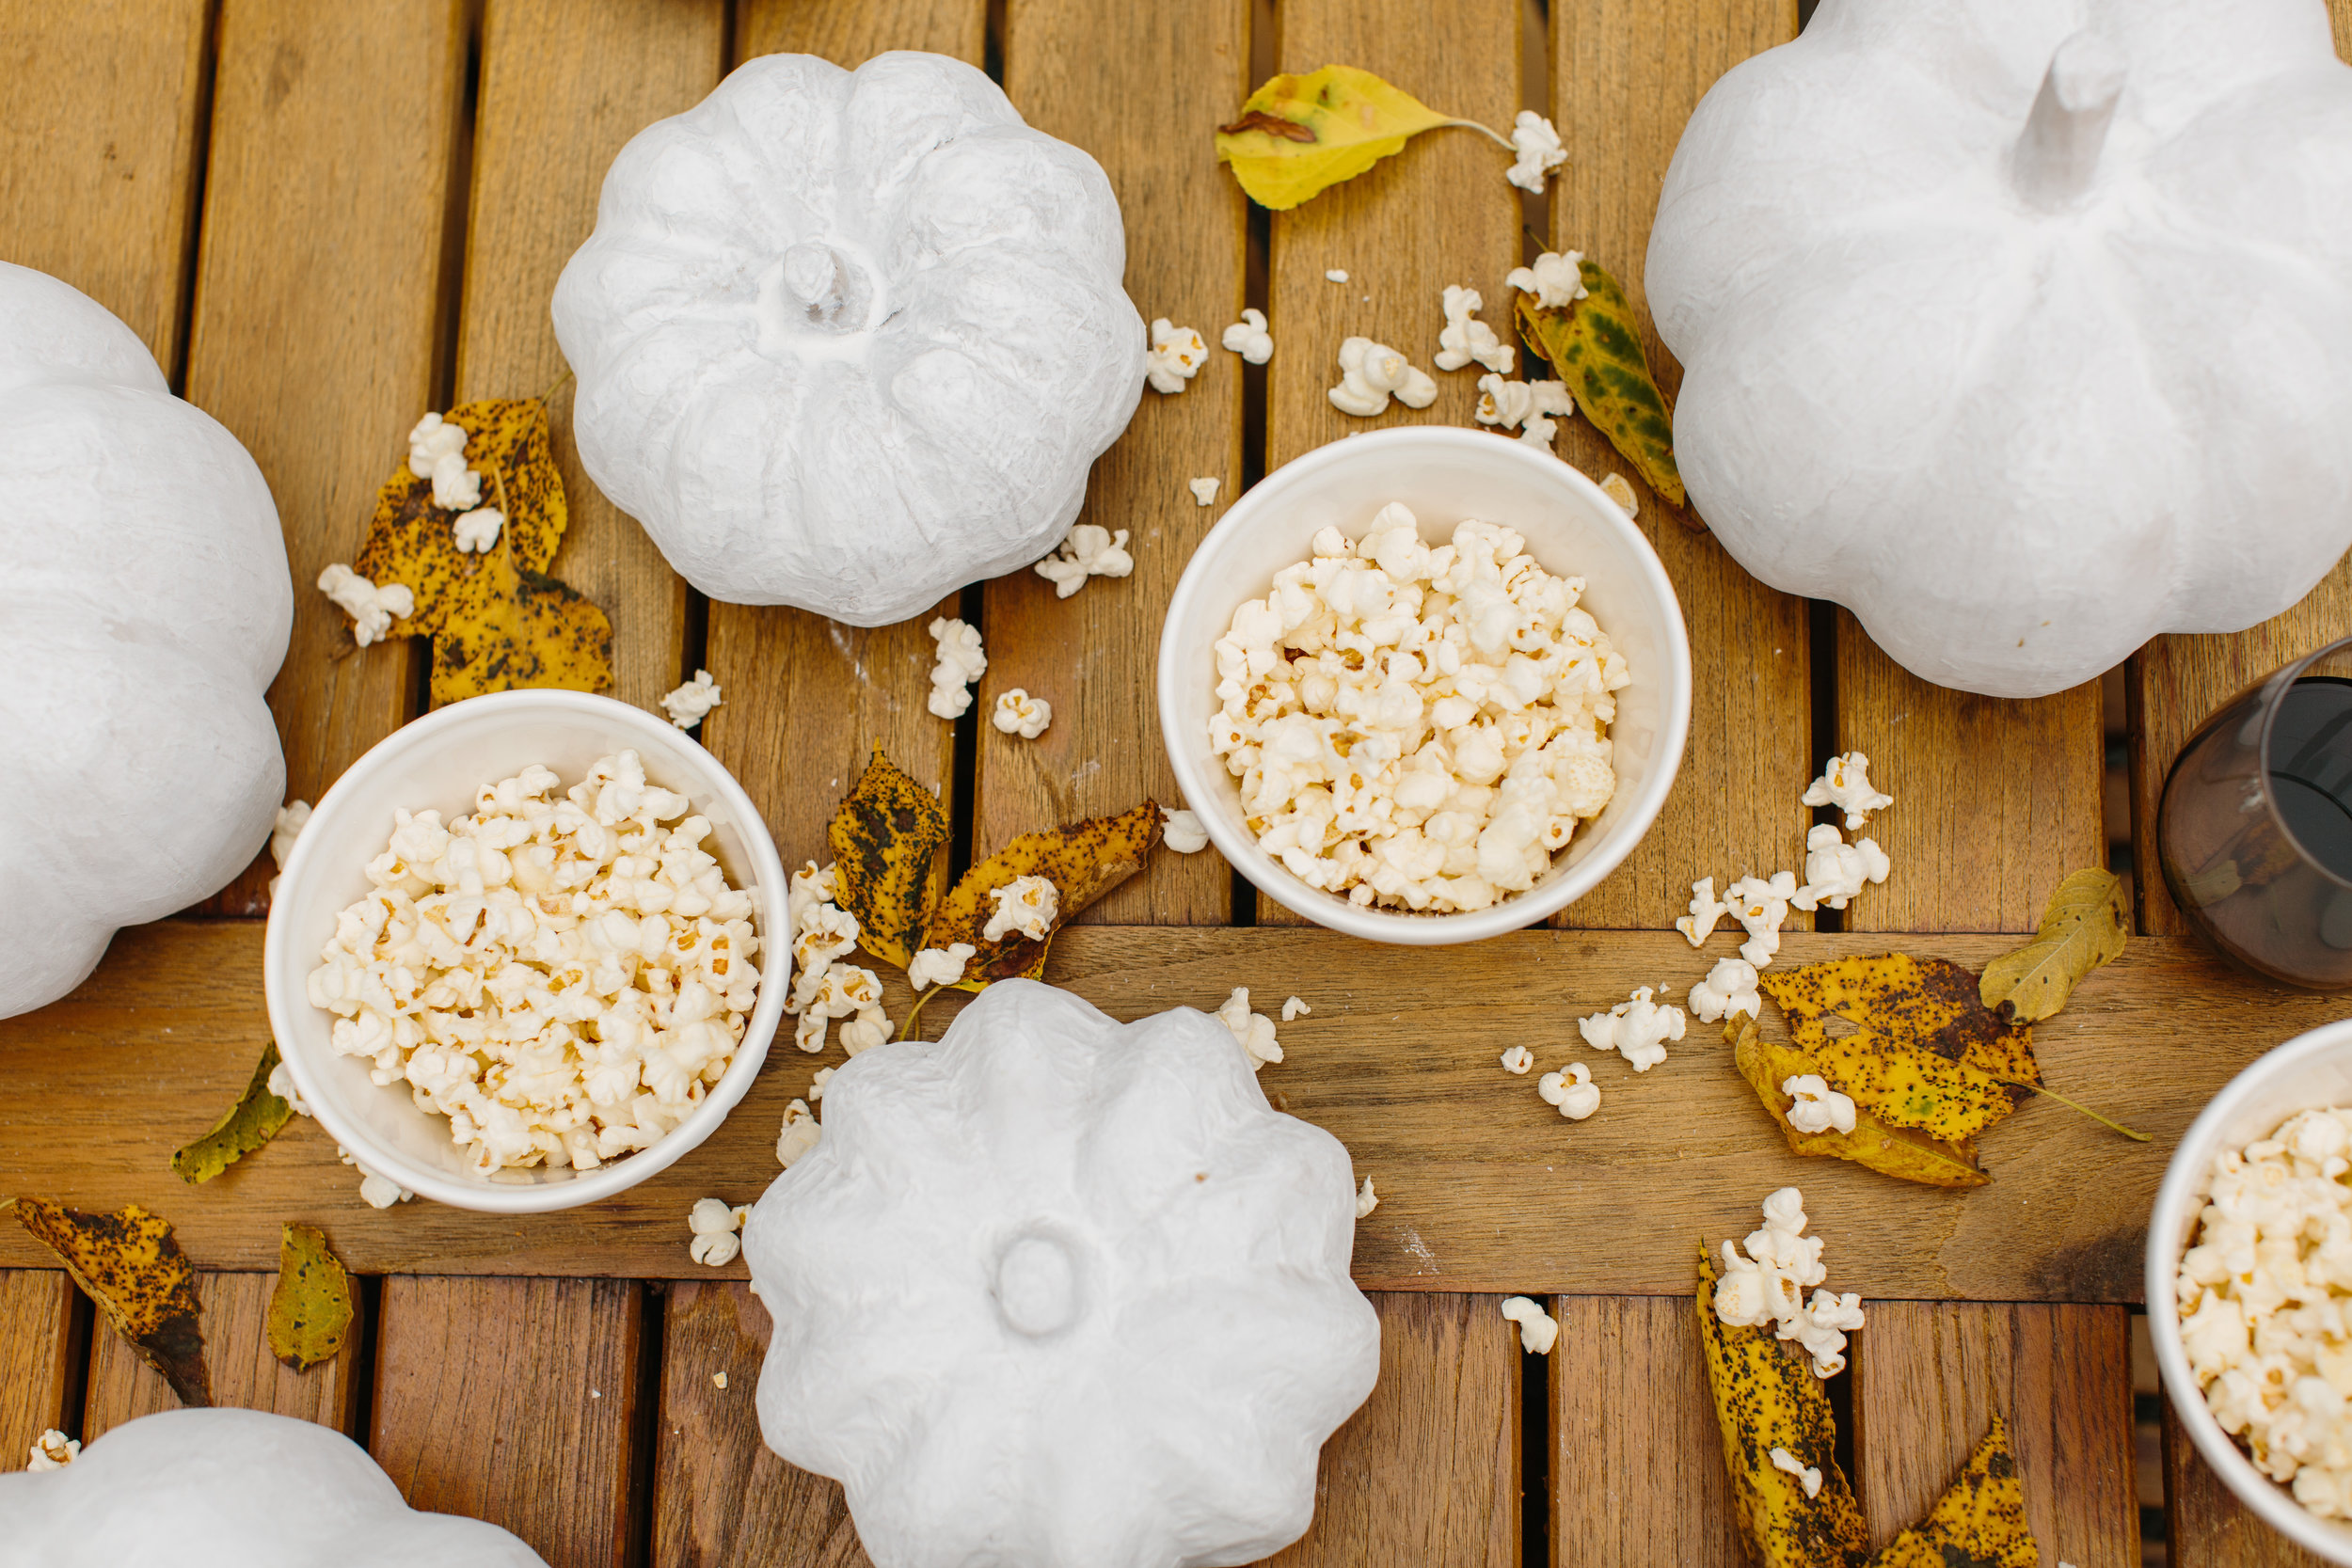 Fall Entertaining Popcorn Party from Abby Capalbo | Photography: Abby Capalbo